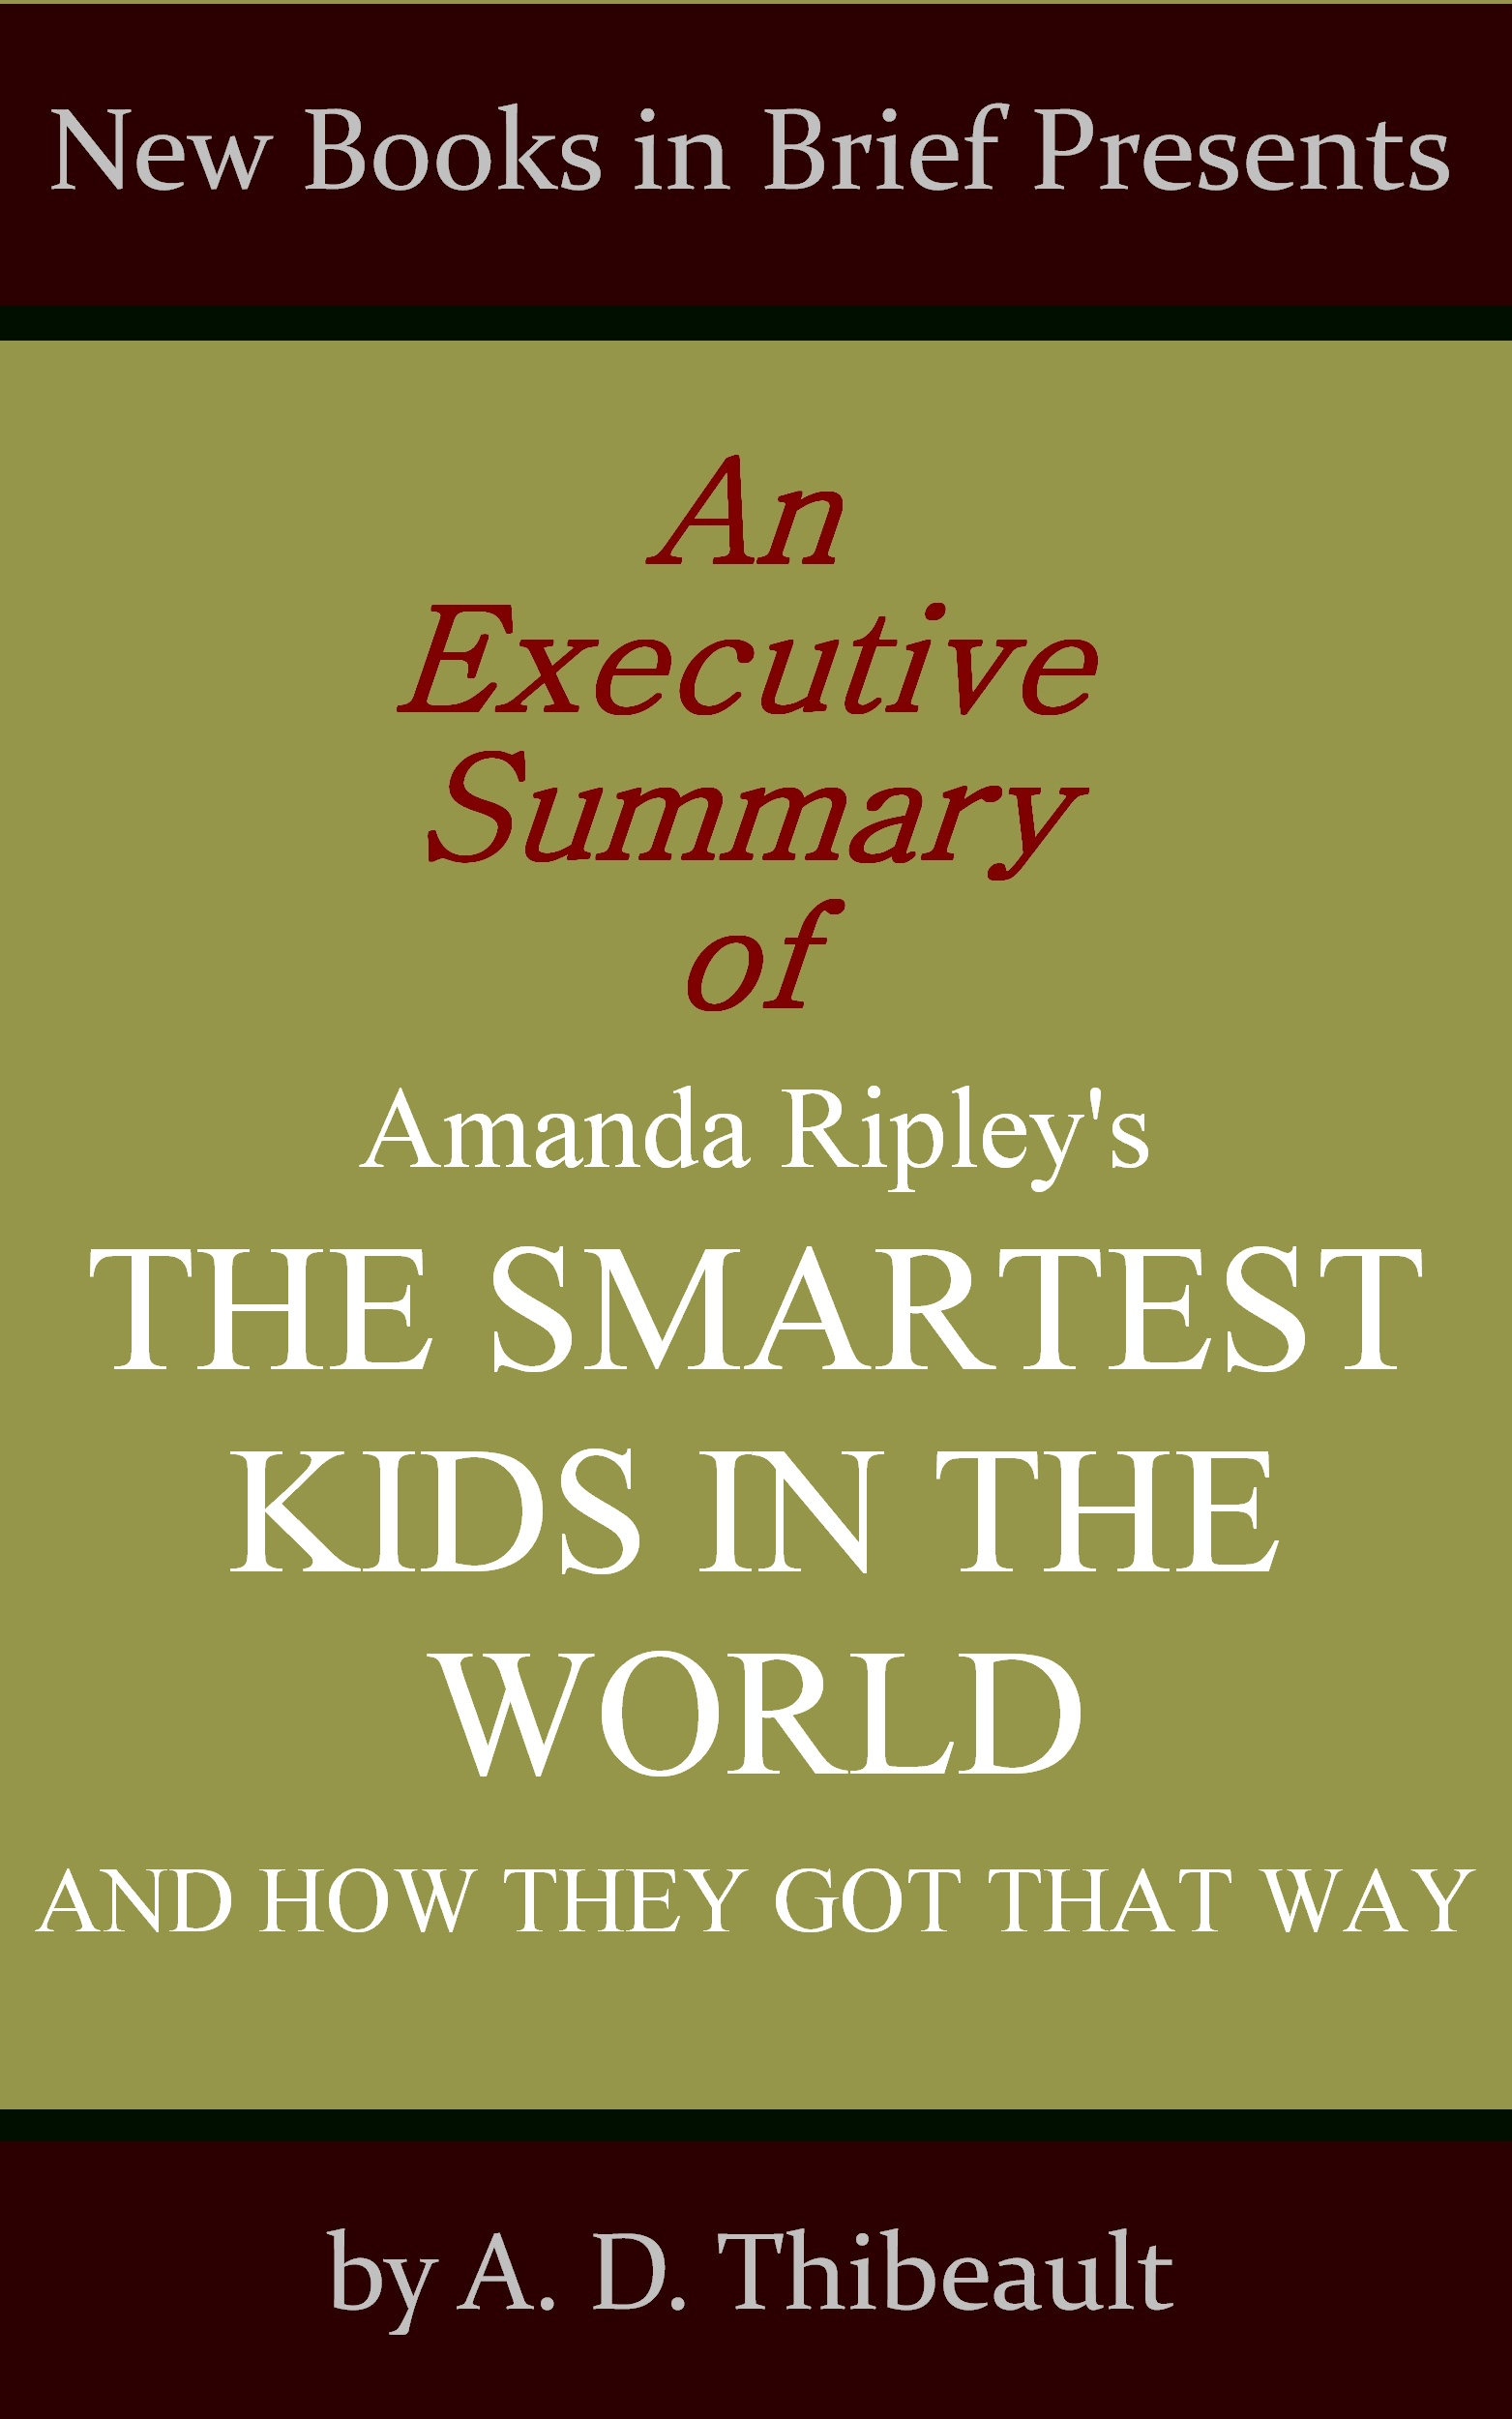 A. D. Thibeault - An Executive Summary of Amanda Ripley's 'The Smartest Kids in the World: And How They Got That Way'